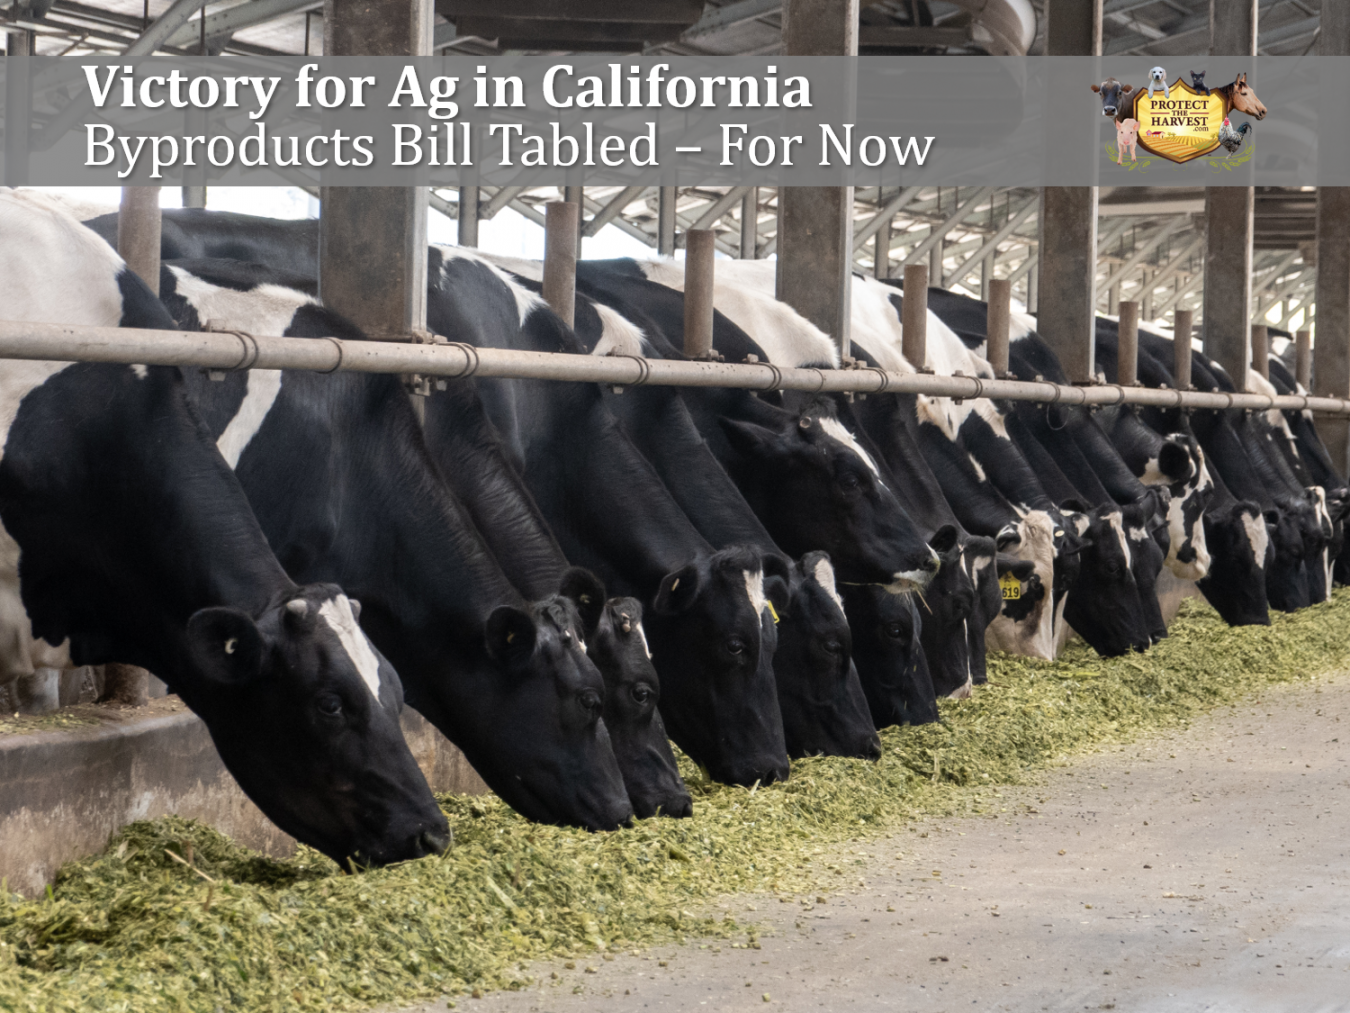 Victory for Ag in California Byproducts Bill Tabled – For Now